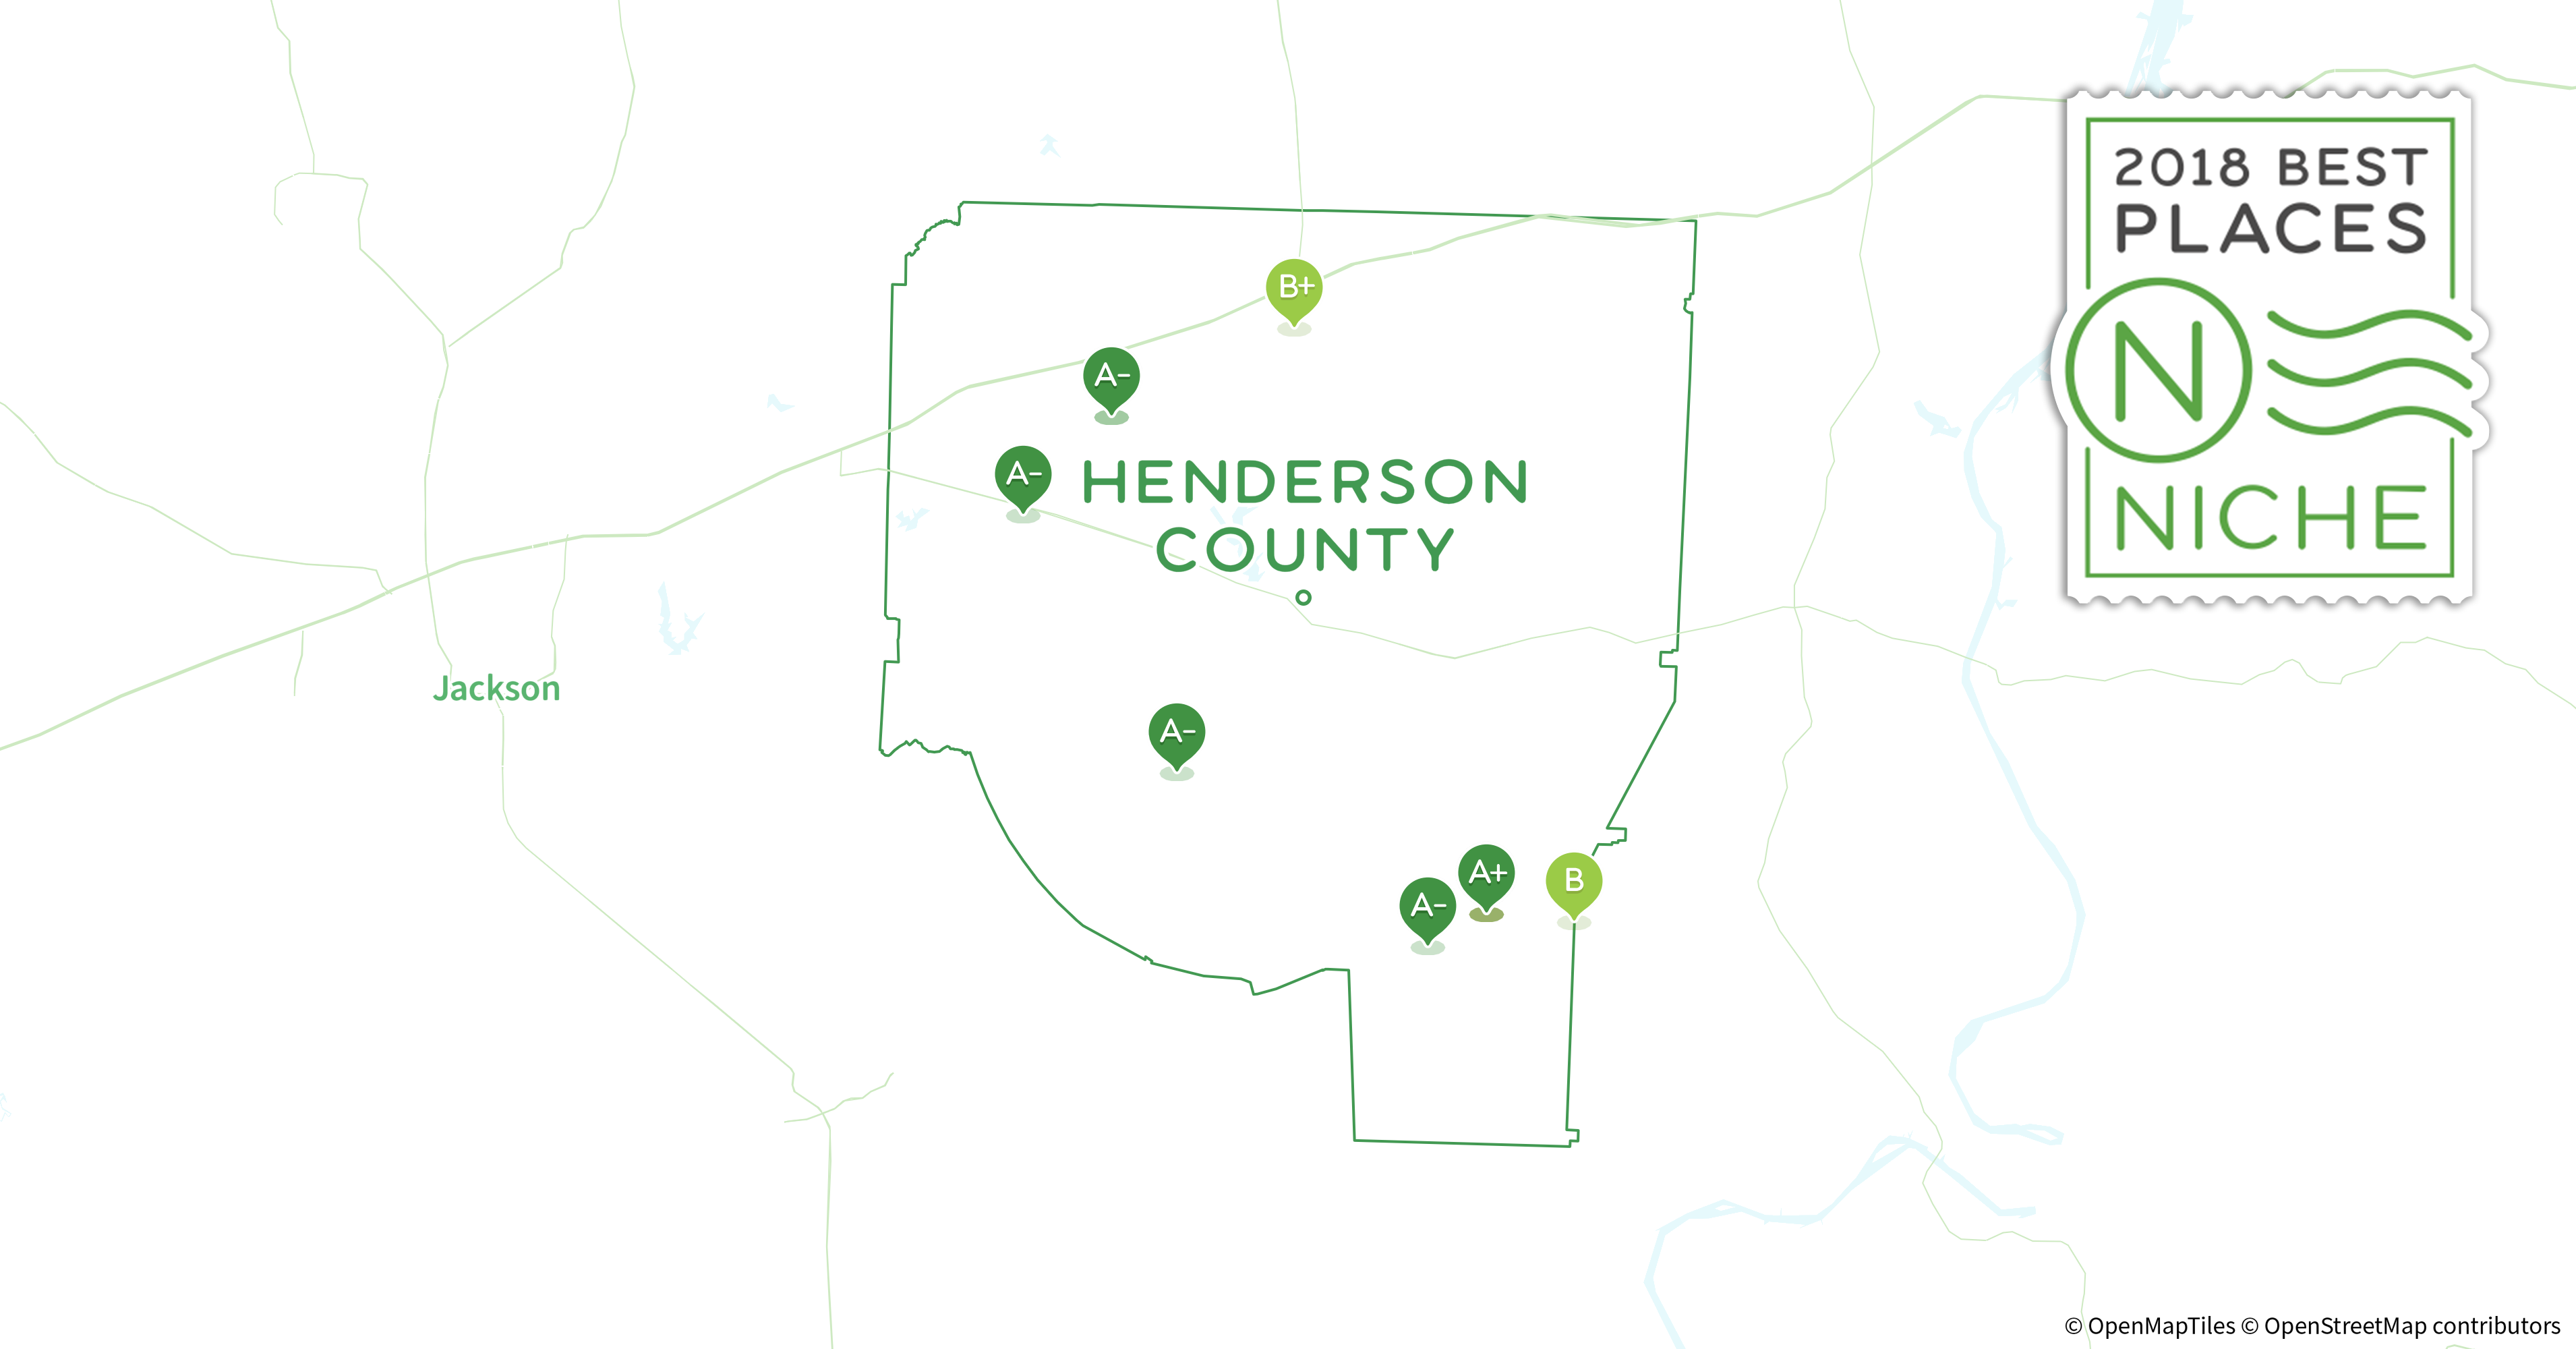 Henderson Tennessee Map.2018 Best Places To Raise A Family In Henderson County Tn Niche